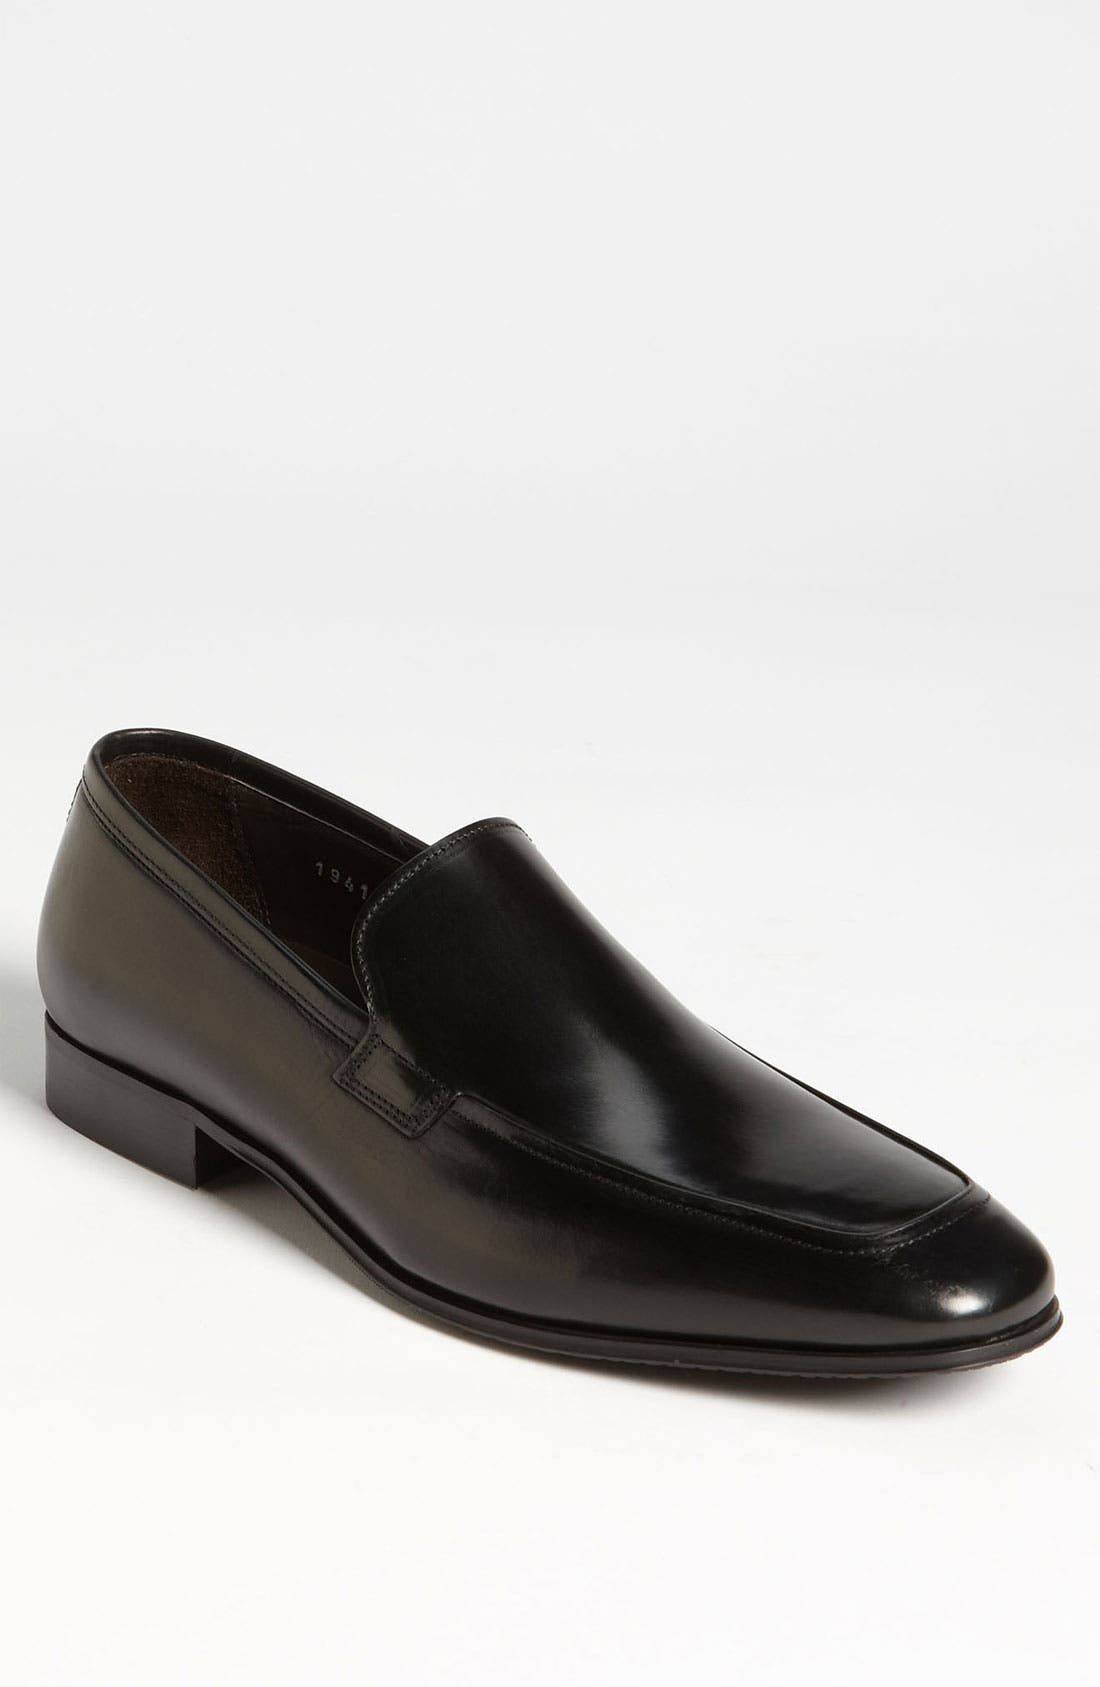 Alternate Image 1 Selected - To Boot New York 'Andrew' Loafer